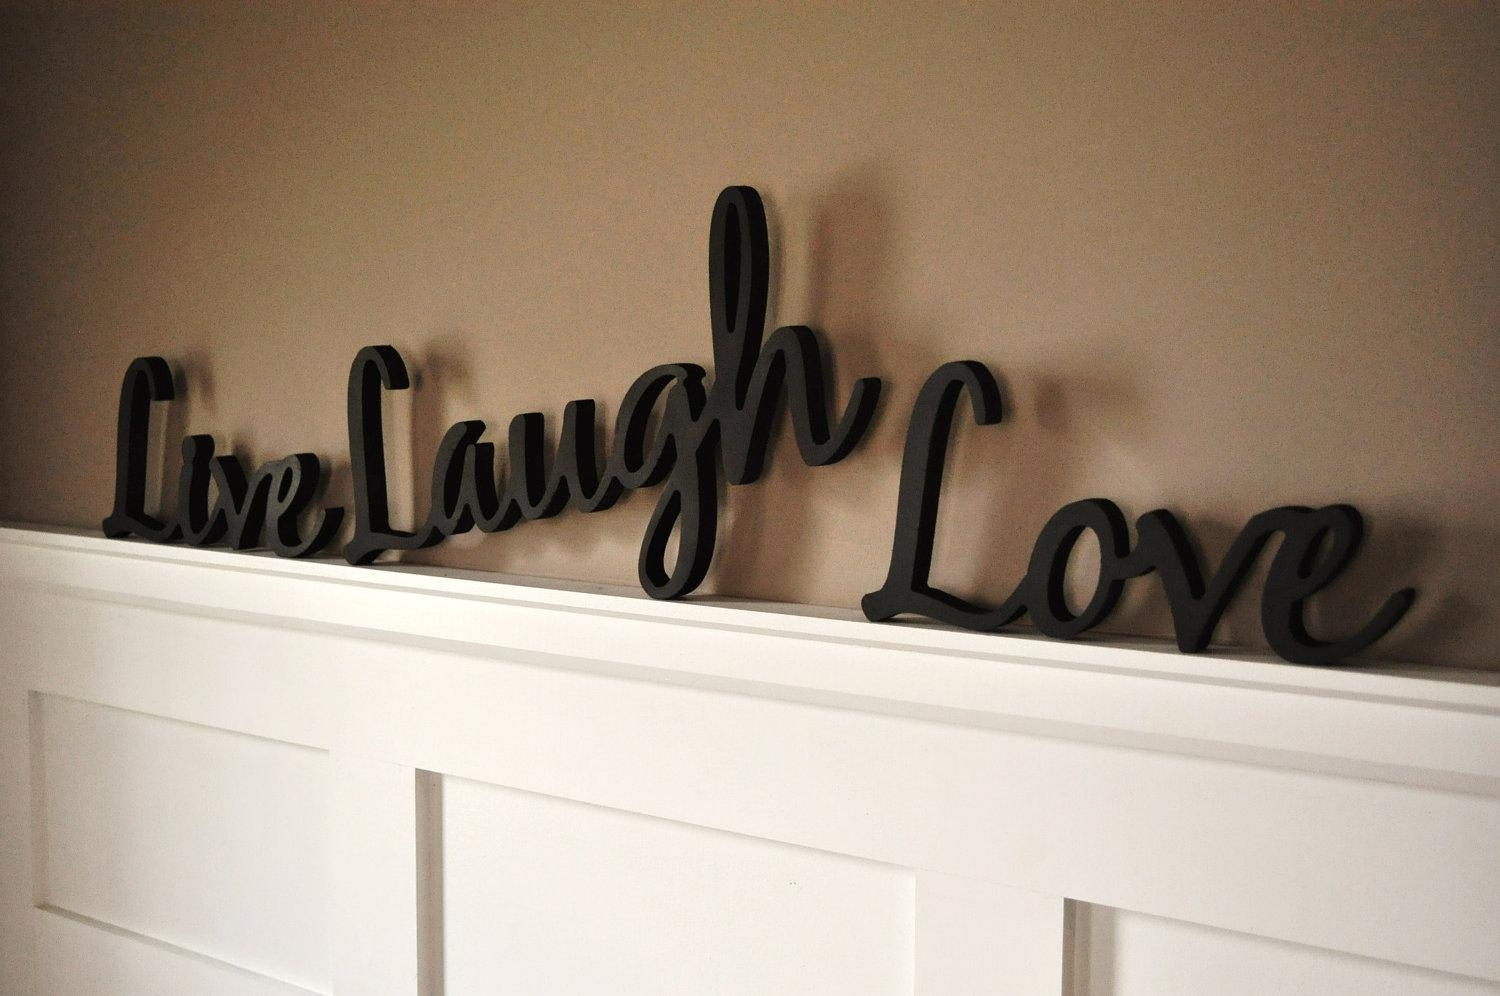 Wall Art Wooden Words | Wallartideas With Regard To Wooden Words Wall Art (Image 14 of 20)